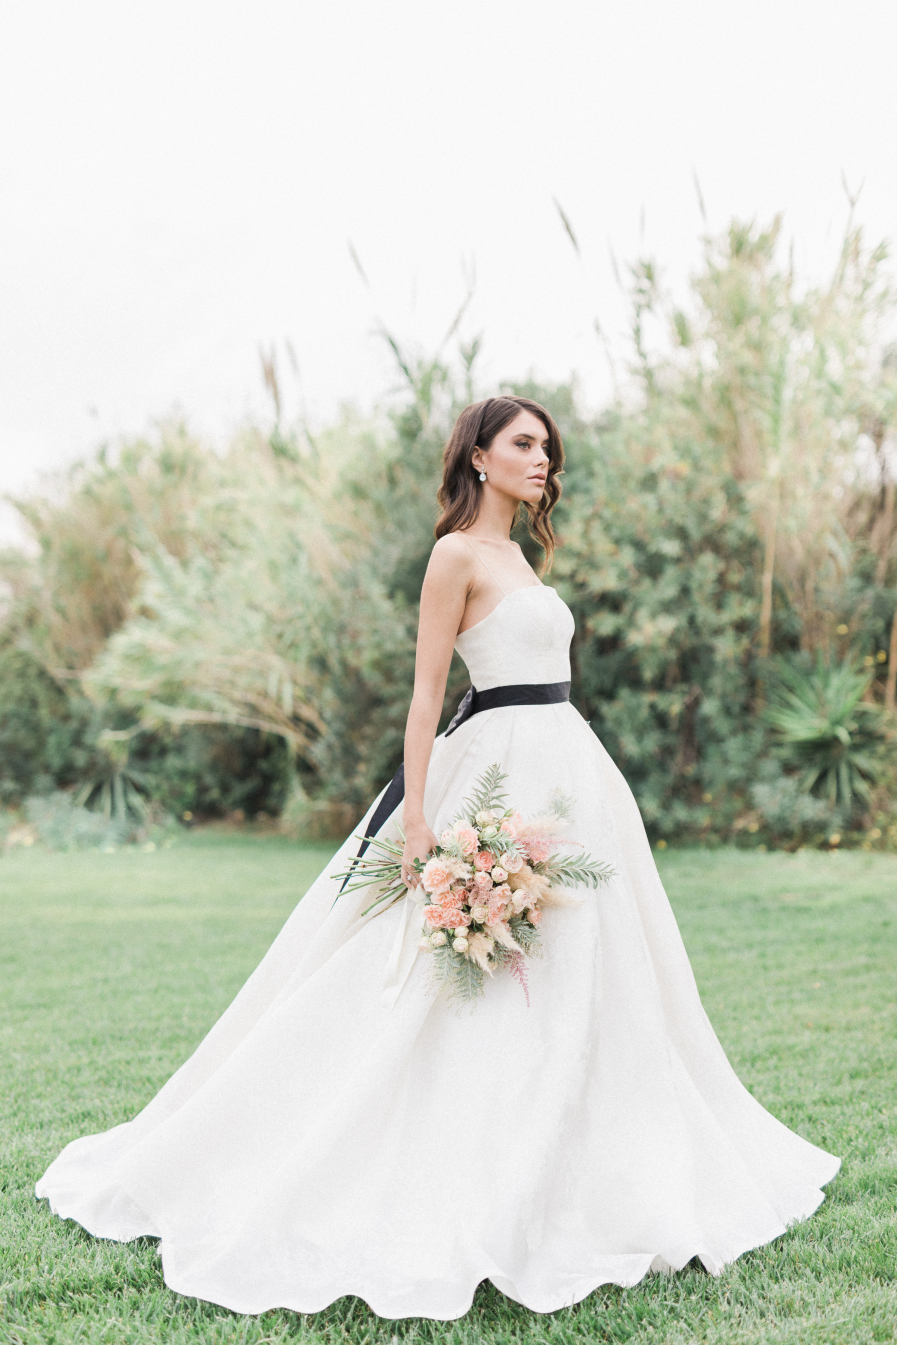 Bride with white dress and black belt holding a bridal bouquet